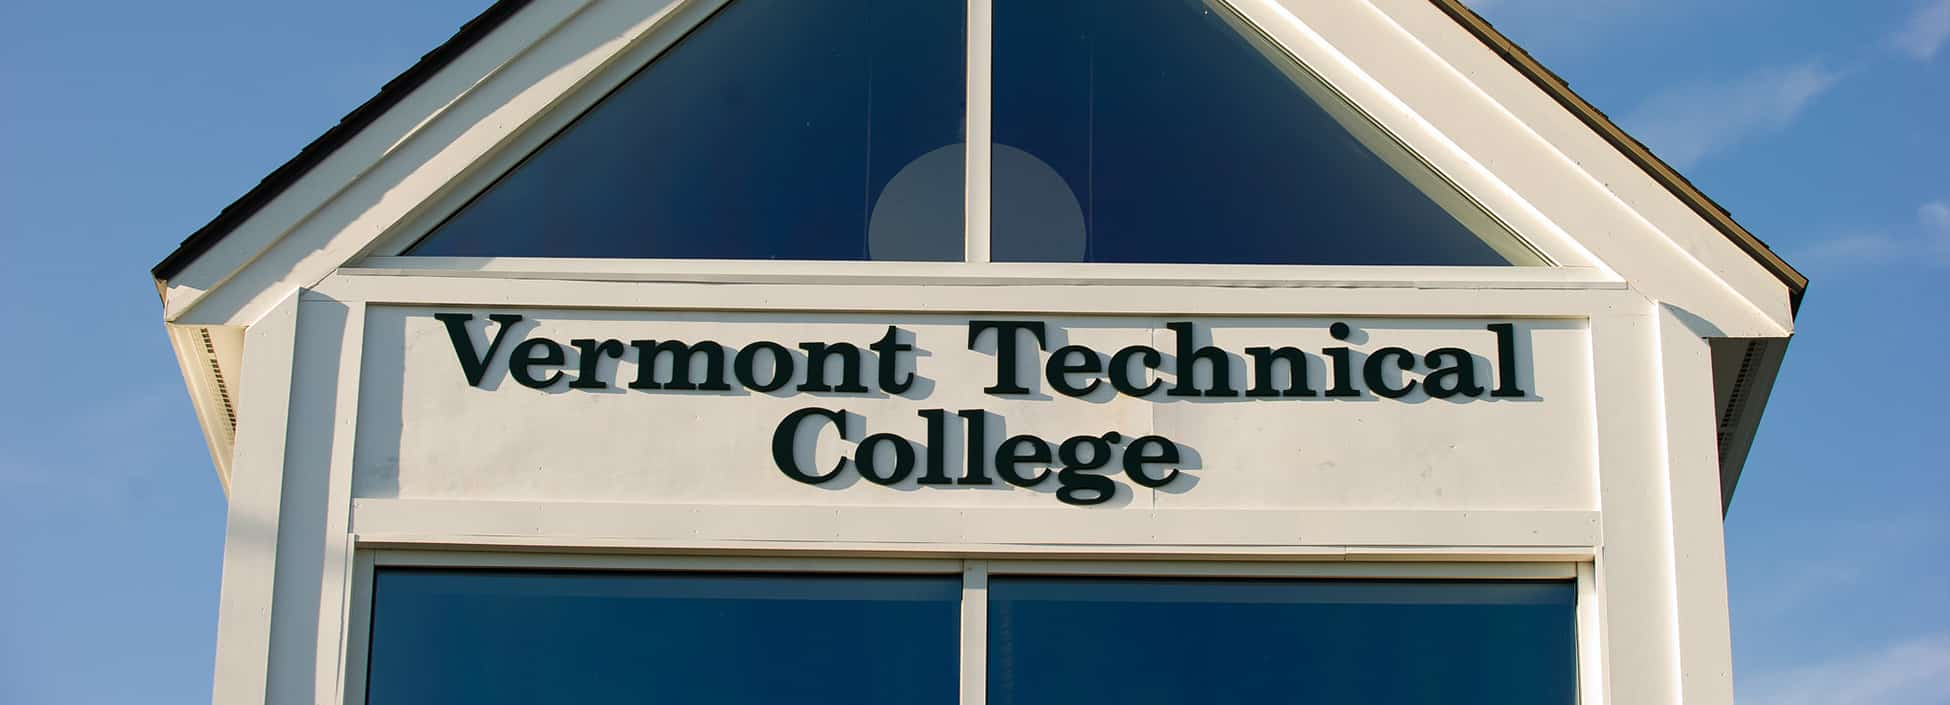 Administration building, Randolph Center campus, Vermont Technical College sign